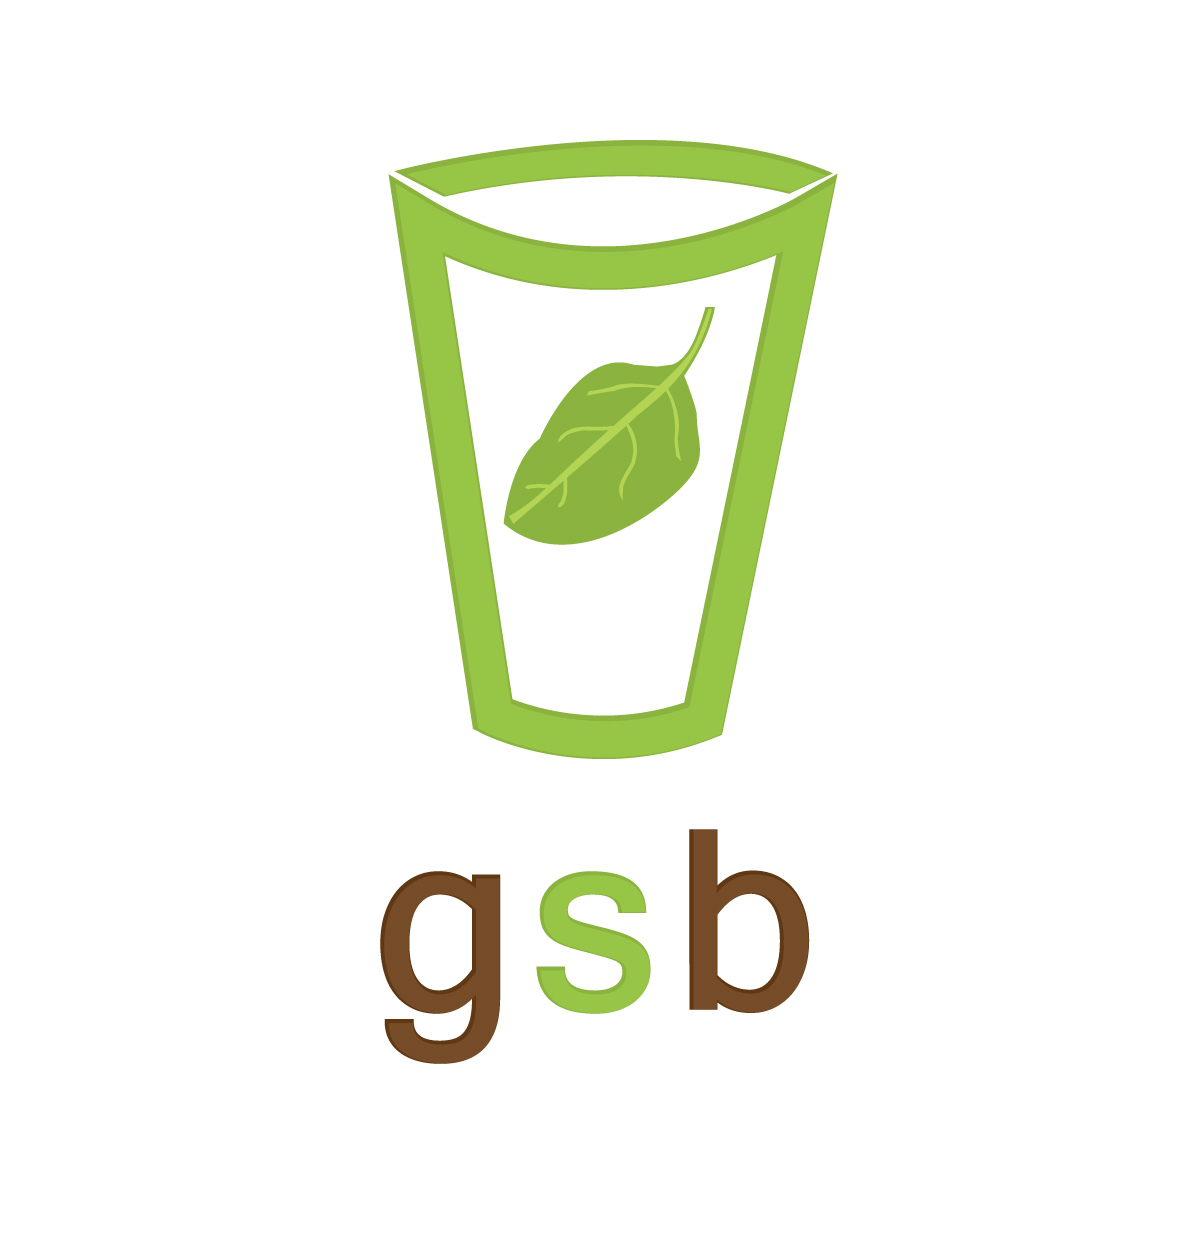 TGSB ApprovedLogoIcon 2